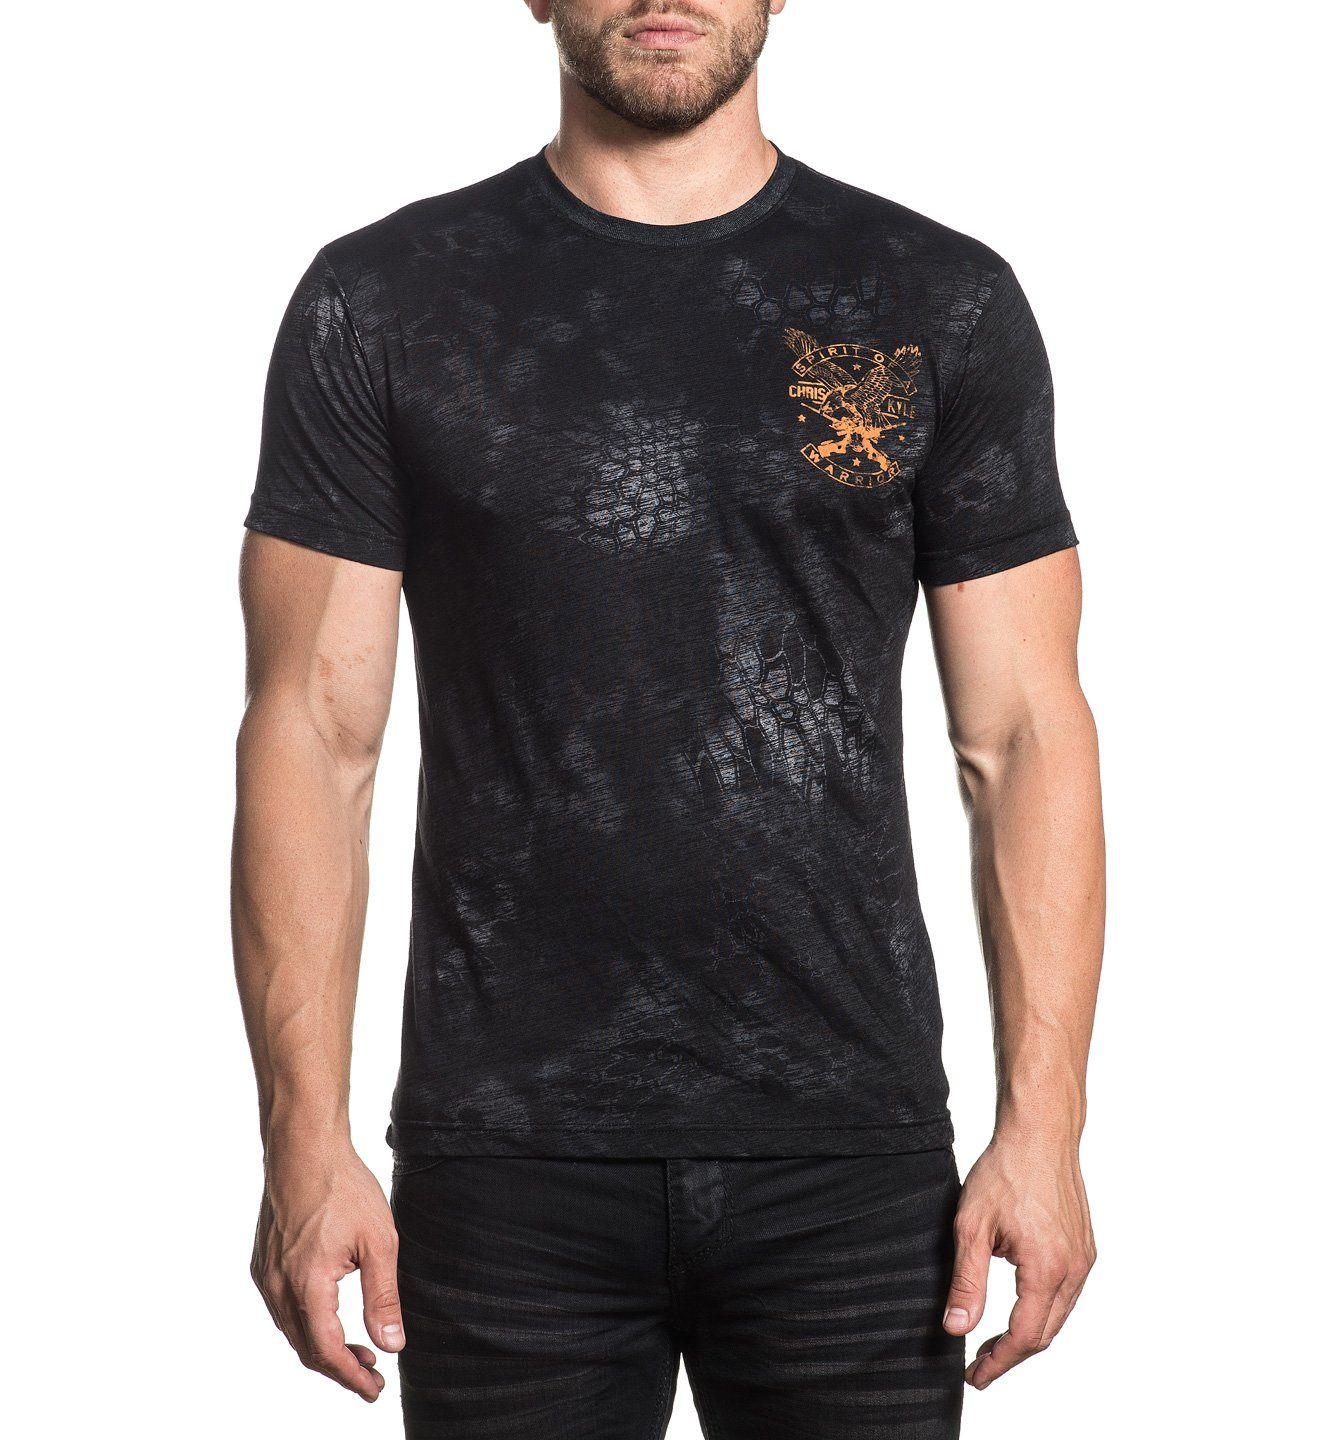 Ck Freedom - Mens Short Sleeve Tees - Affliction Clothing